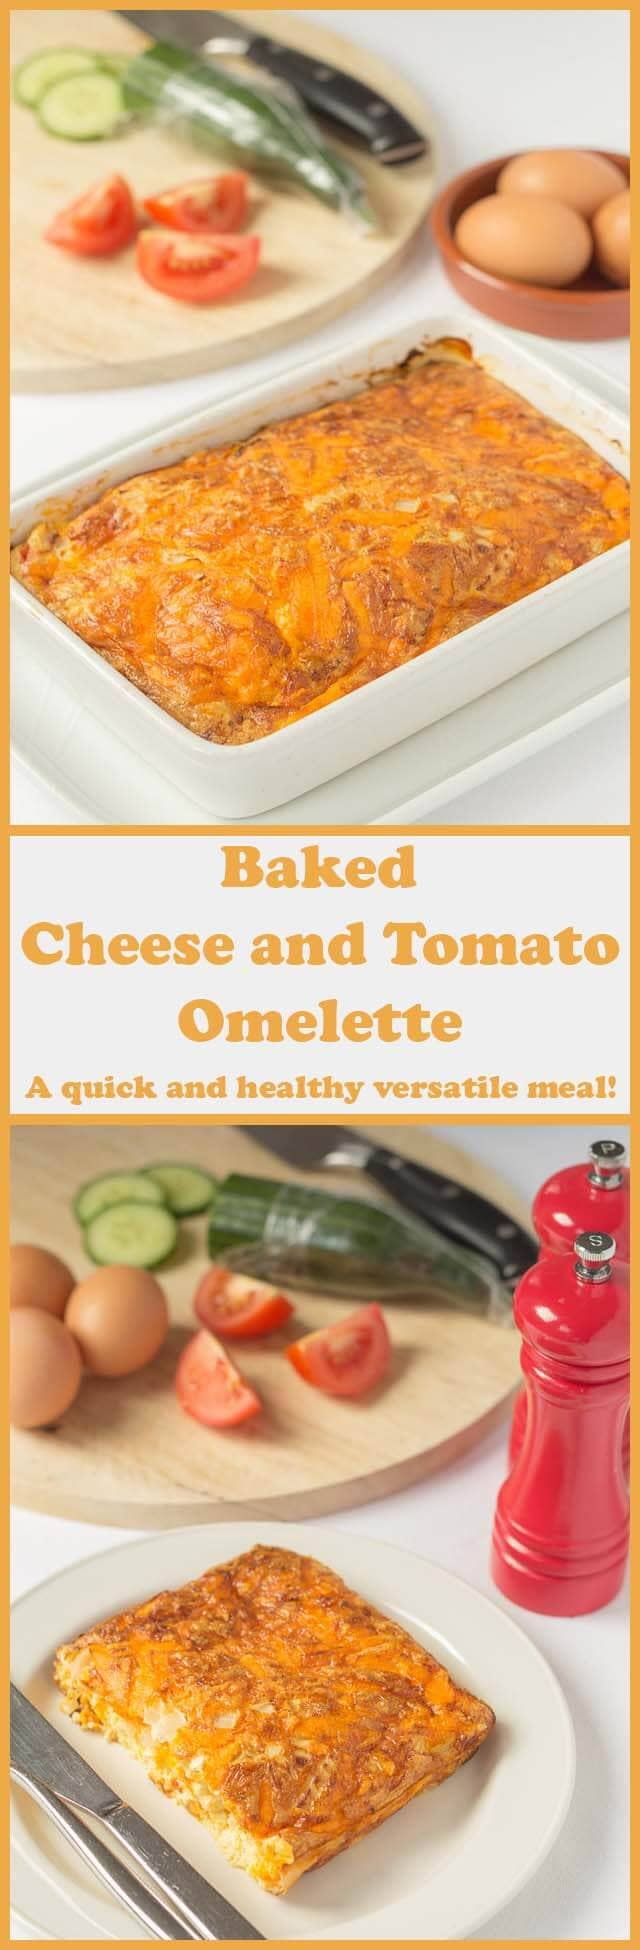 This simple baked cheese and tomato omelette throws convention out of the window. It's delicious and cheesy and it doesn't require you to be standing at the stove to make it. It's baked in the oven and with just 5 ingredients it's incredibly easy to make too!